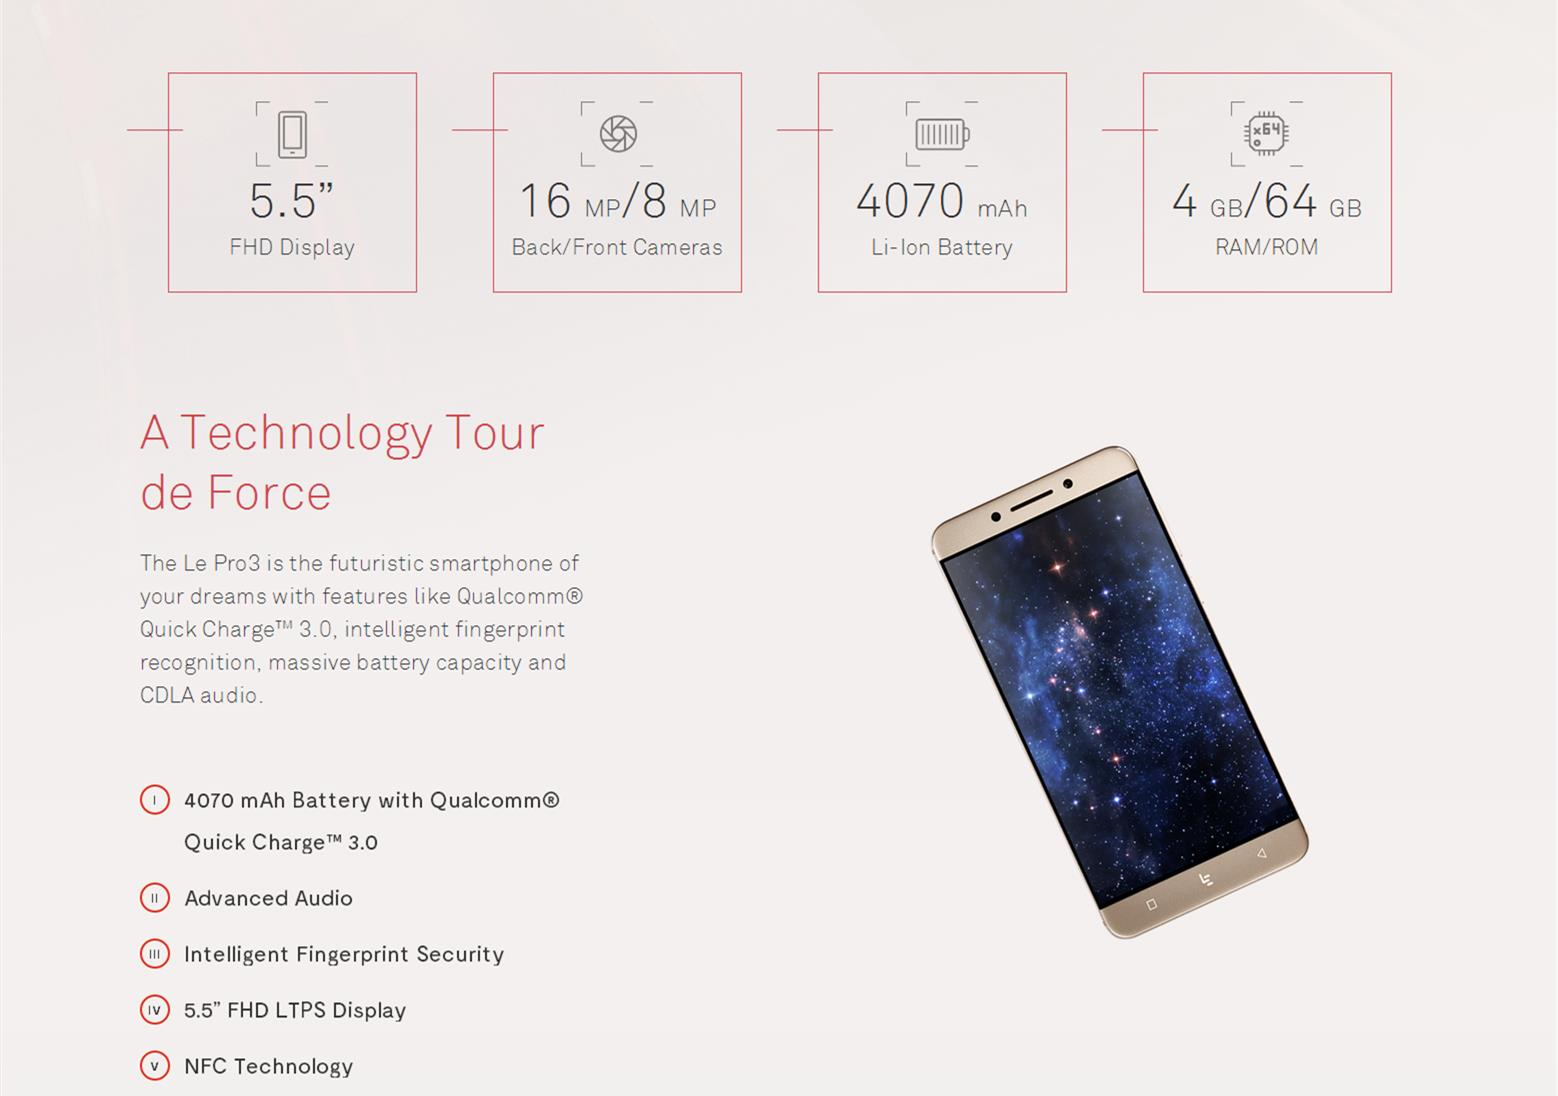 LeTV Leeco Le Pro 3 5.5-inch 2.5D 4GB RAM 64GB ROM Snapdragon 821 2.35 GHz Quad-core 4G Smartphone